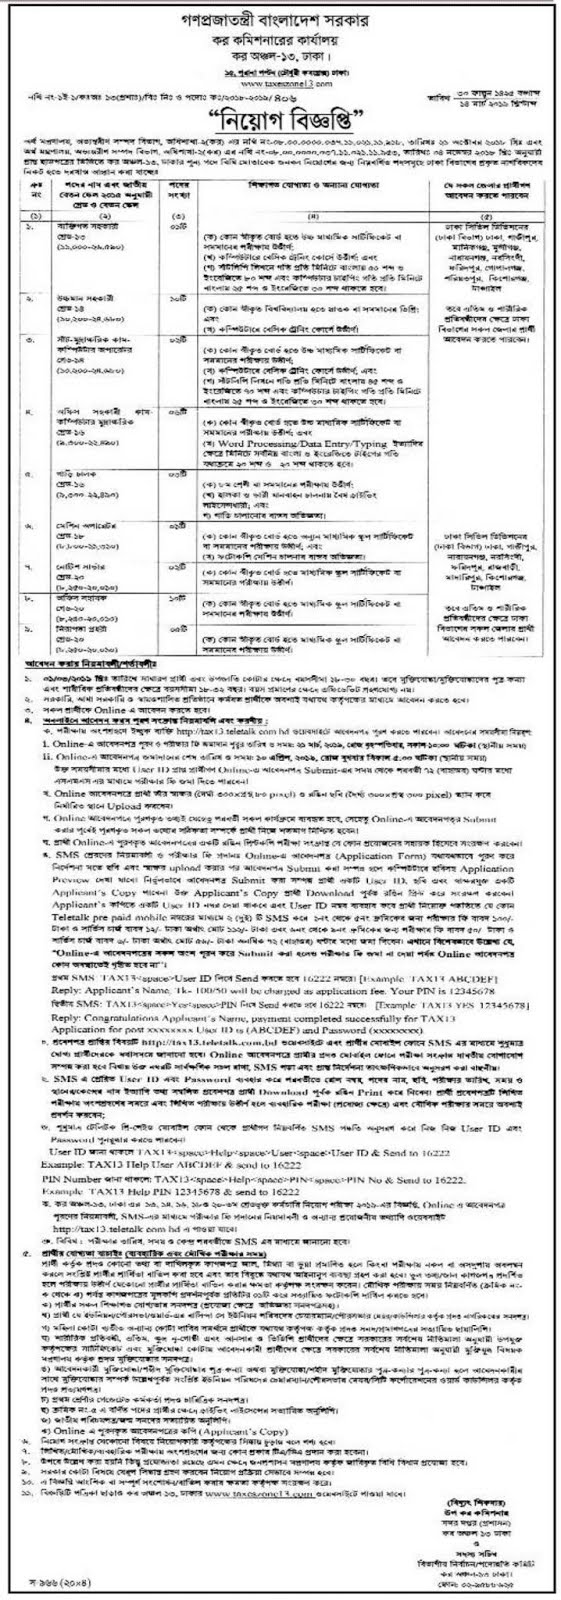 Job Circular 2019-Tax Commissioner Office Image